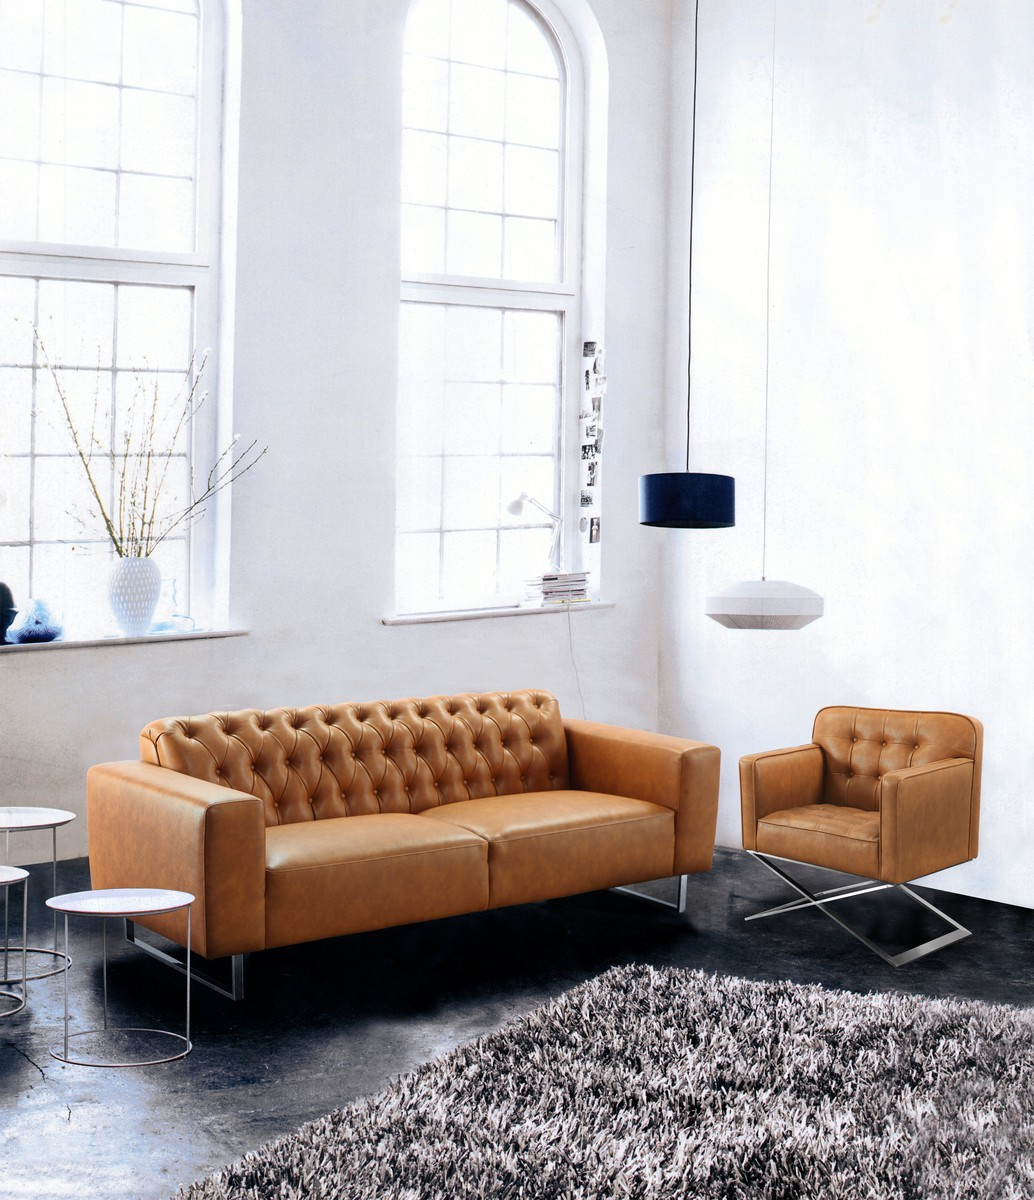 Retro Couch Retro Look Couch Vintage Sofa Moebeldeal